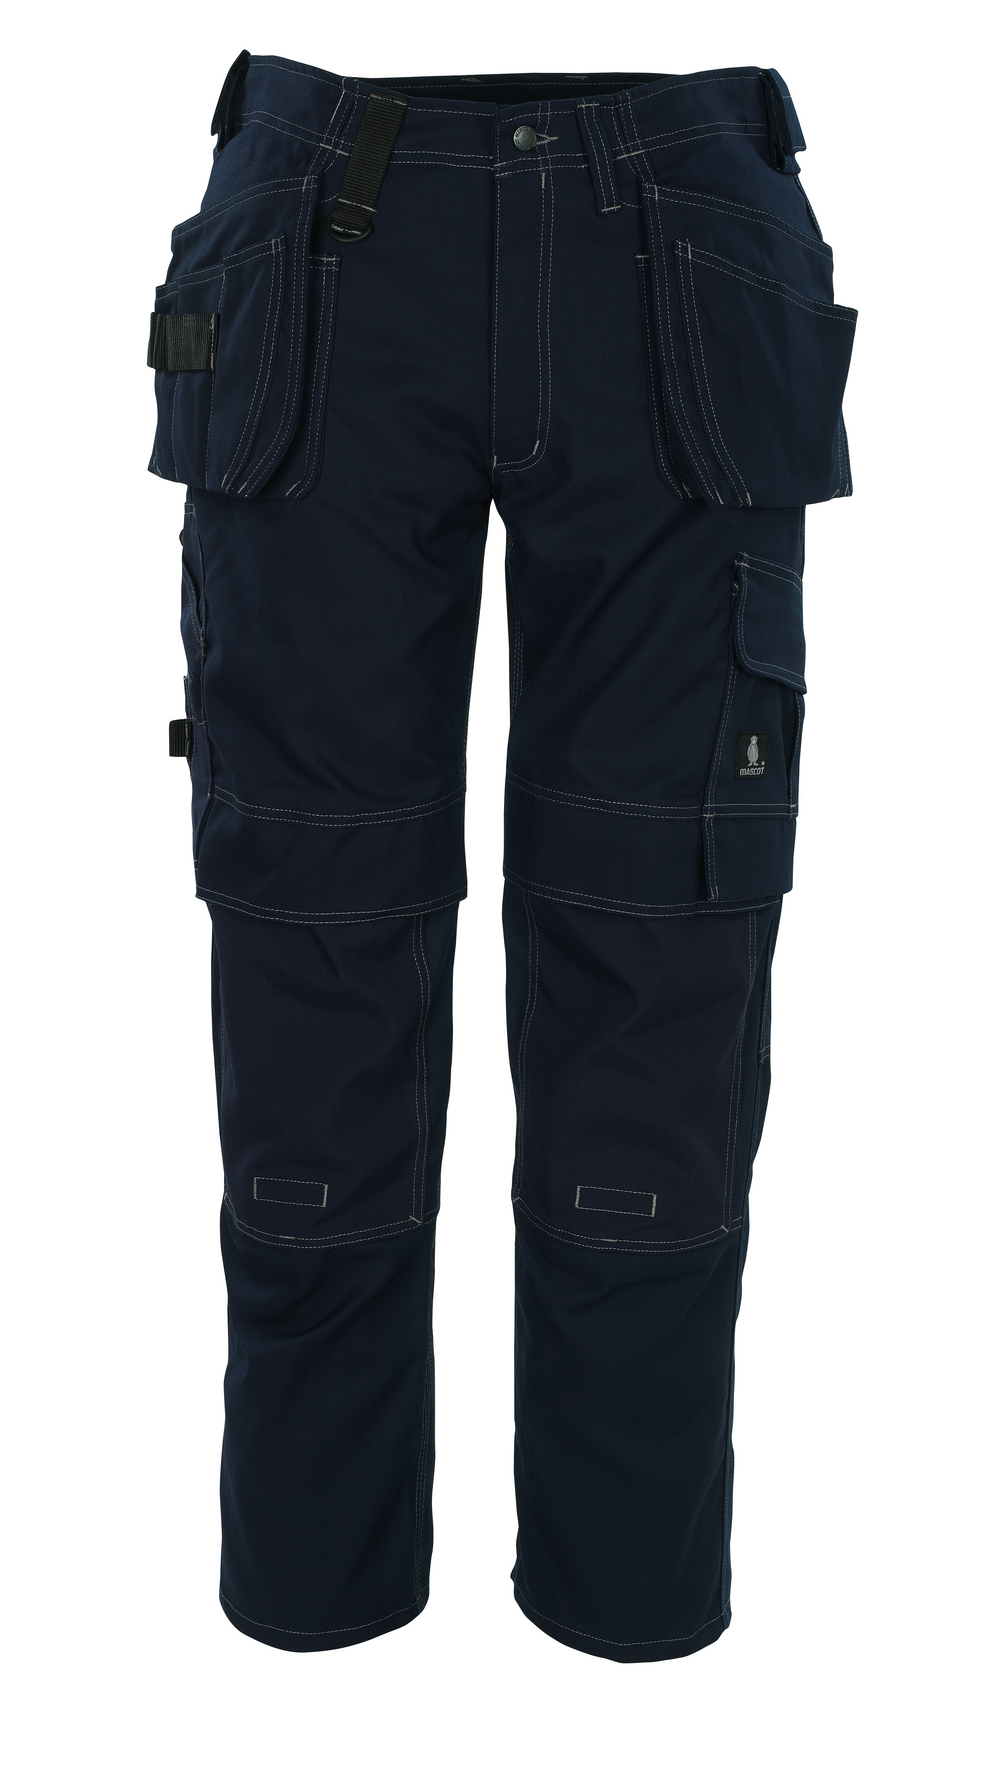 08131-010-01 Pants with kneepad pockets and holster pockets - navy